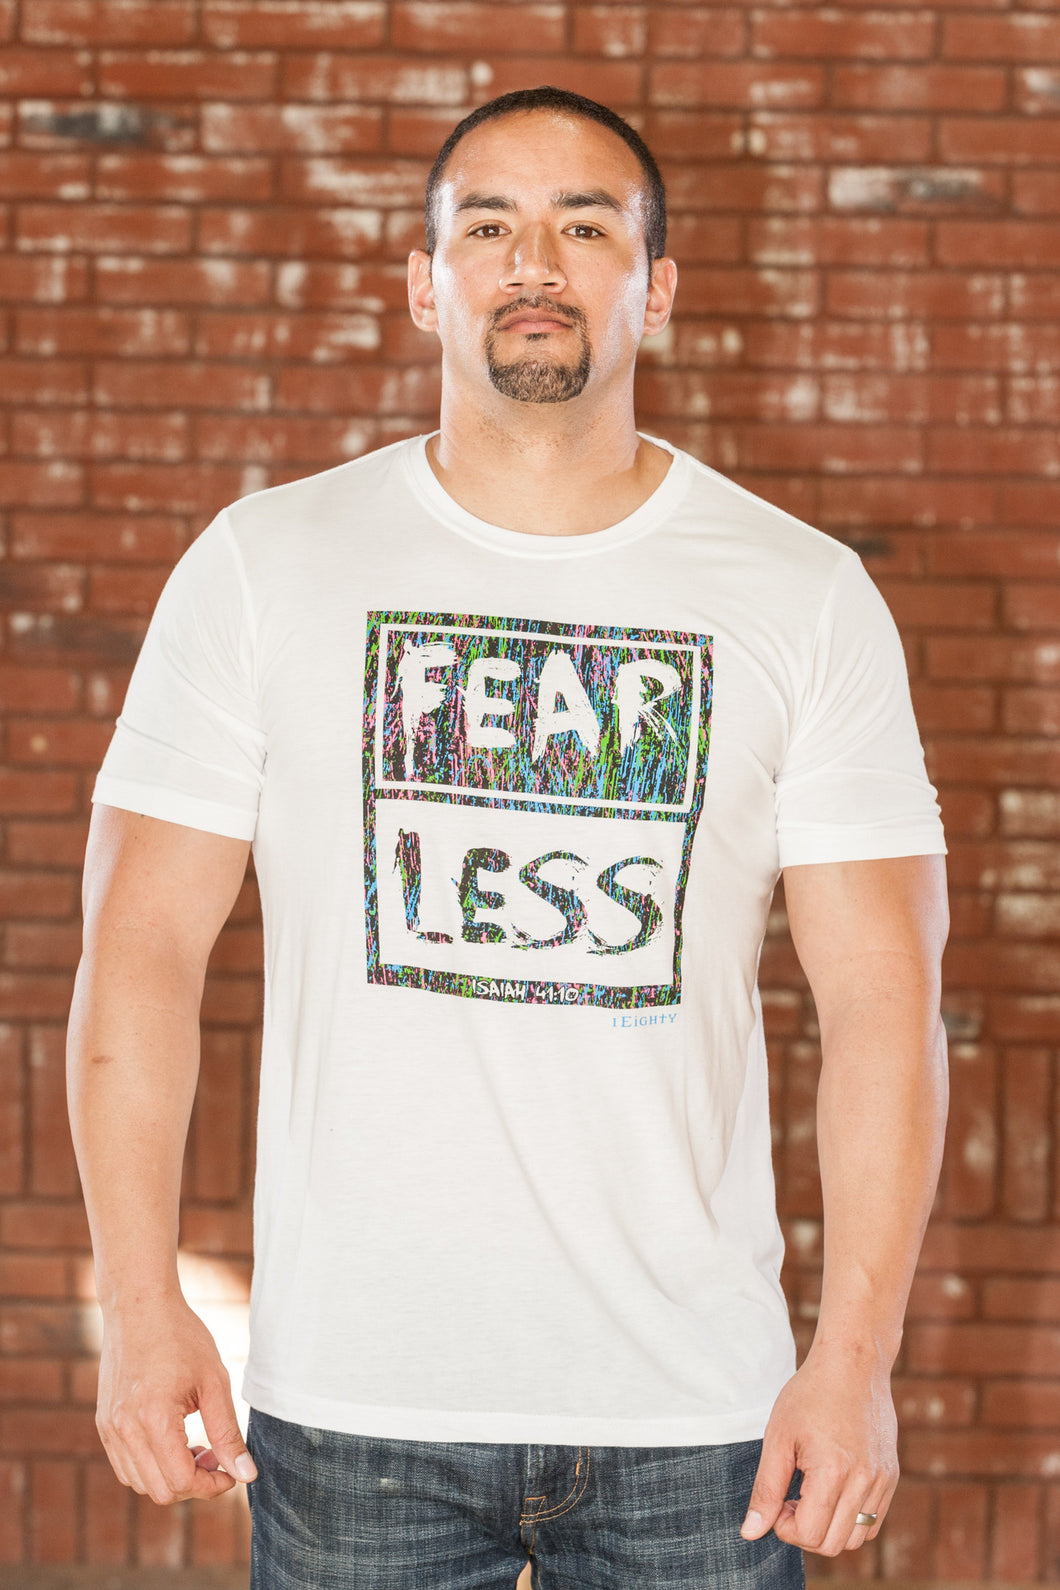 Fearless White T-Shirt - Men's